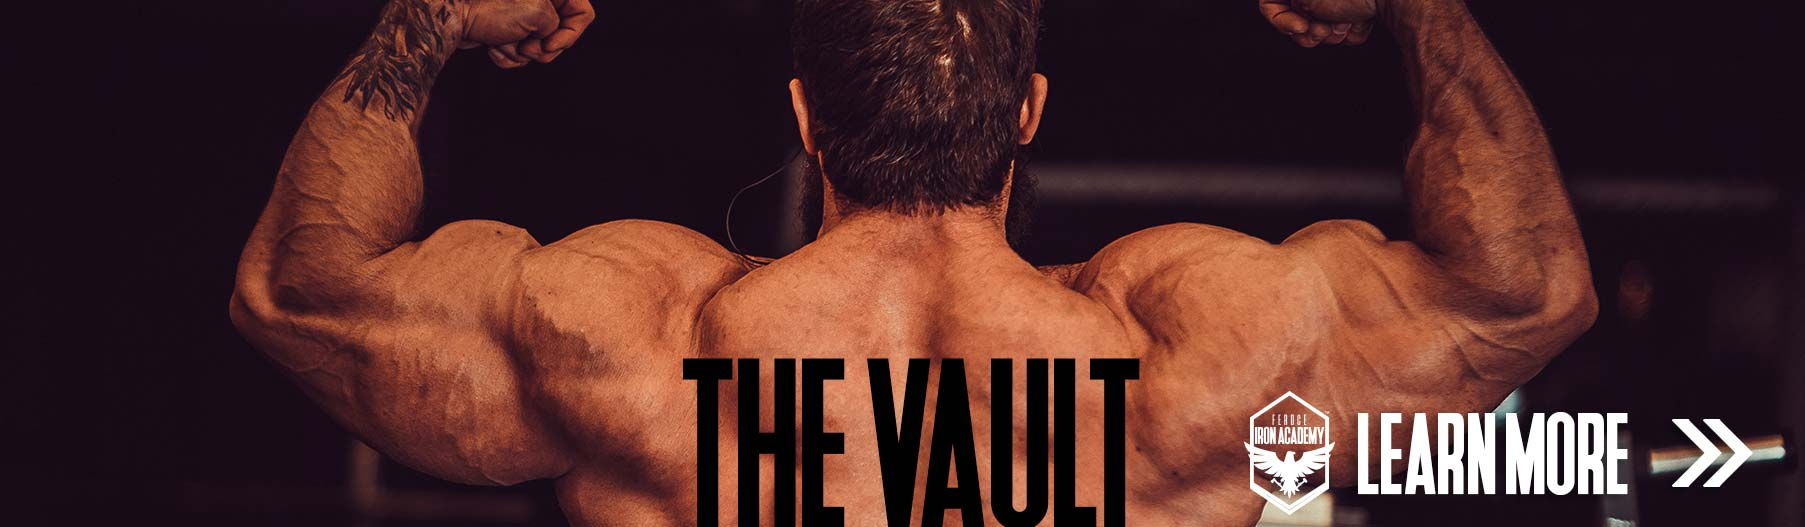 Introducing The Vault